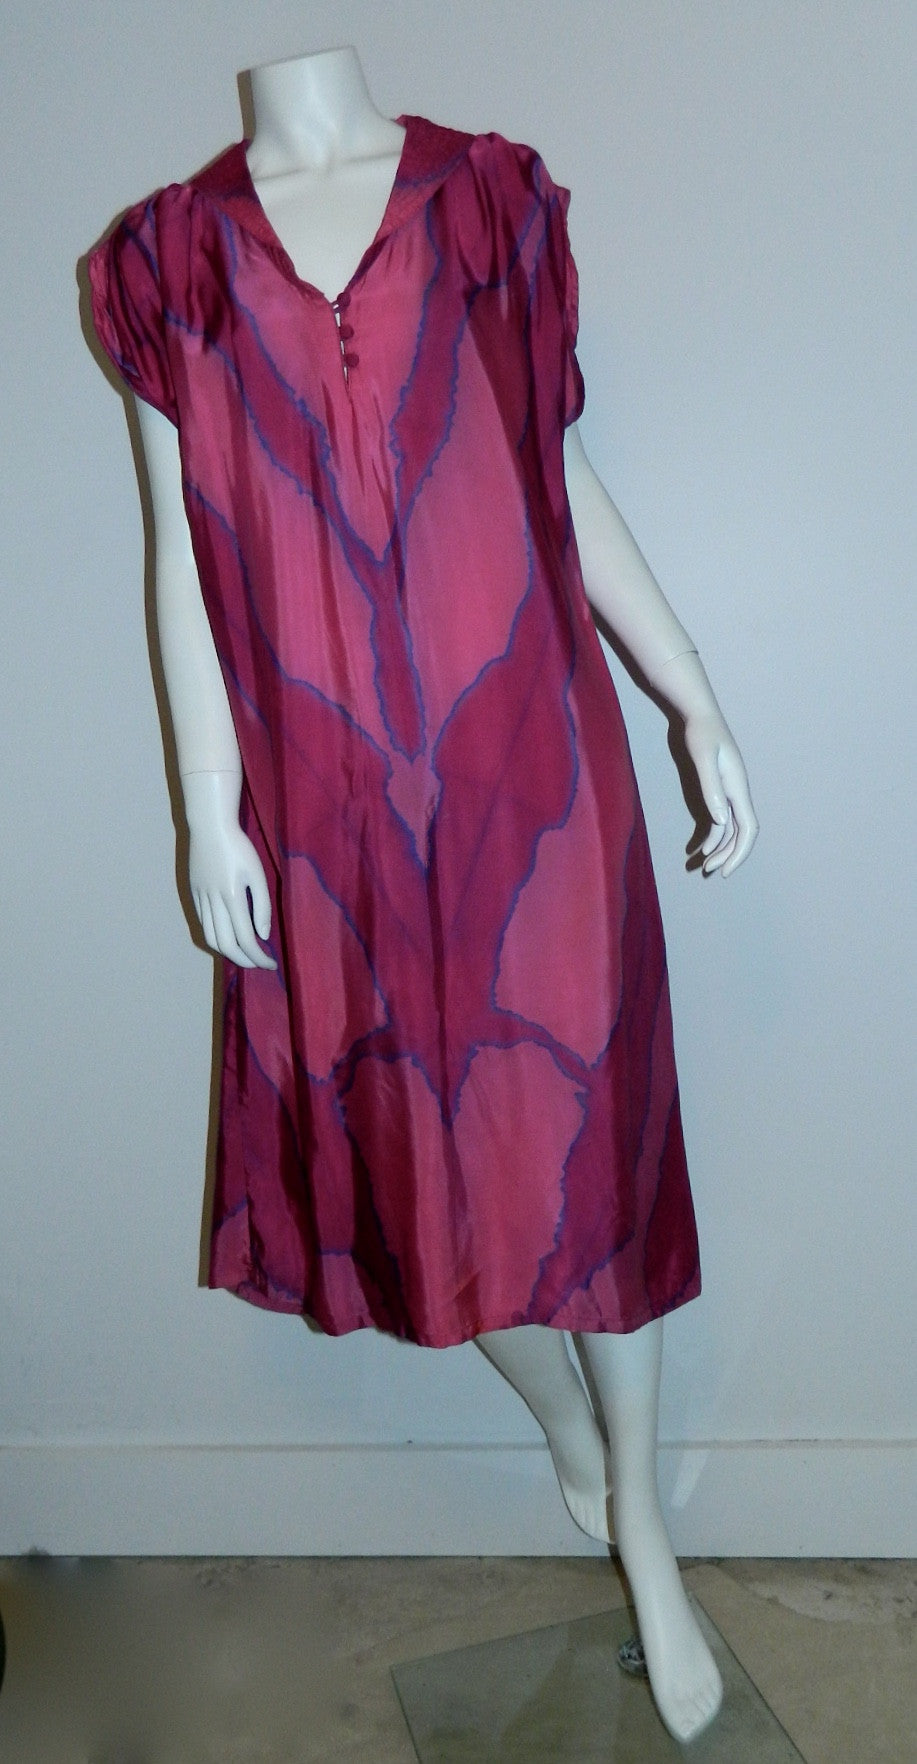 magenta silk HAND DYED poets dress / vintage 1970s / artist made OOAK